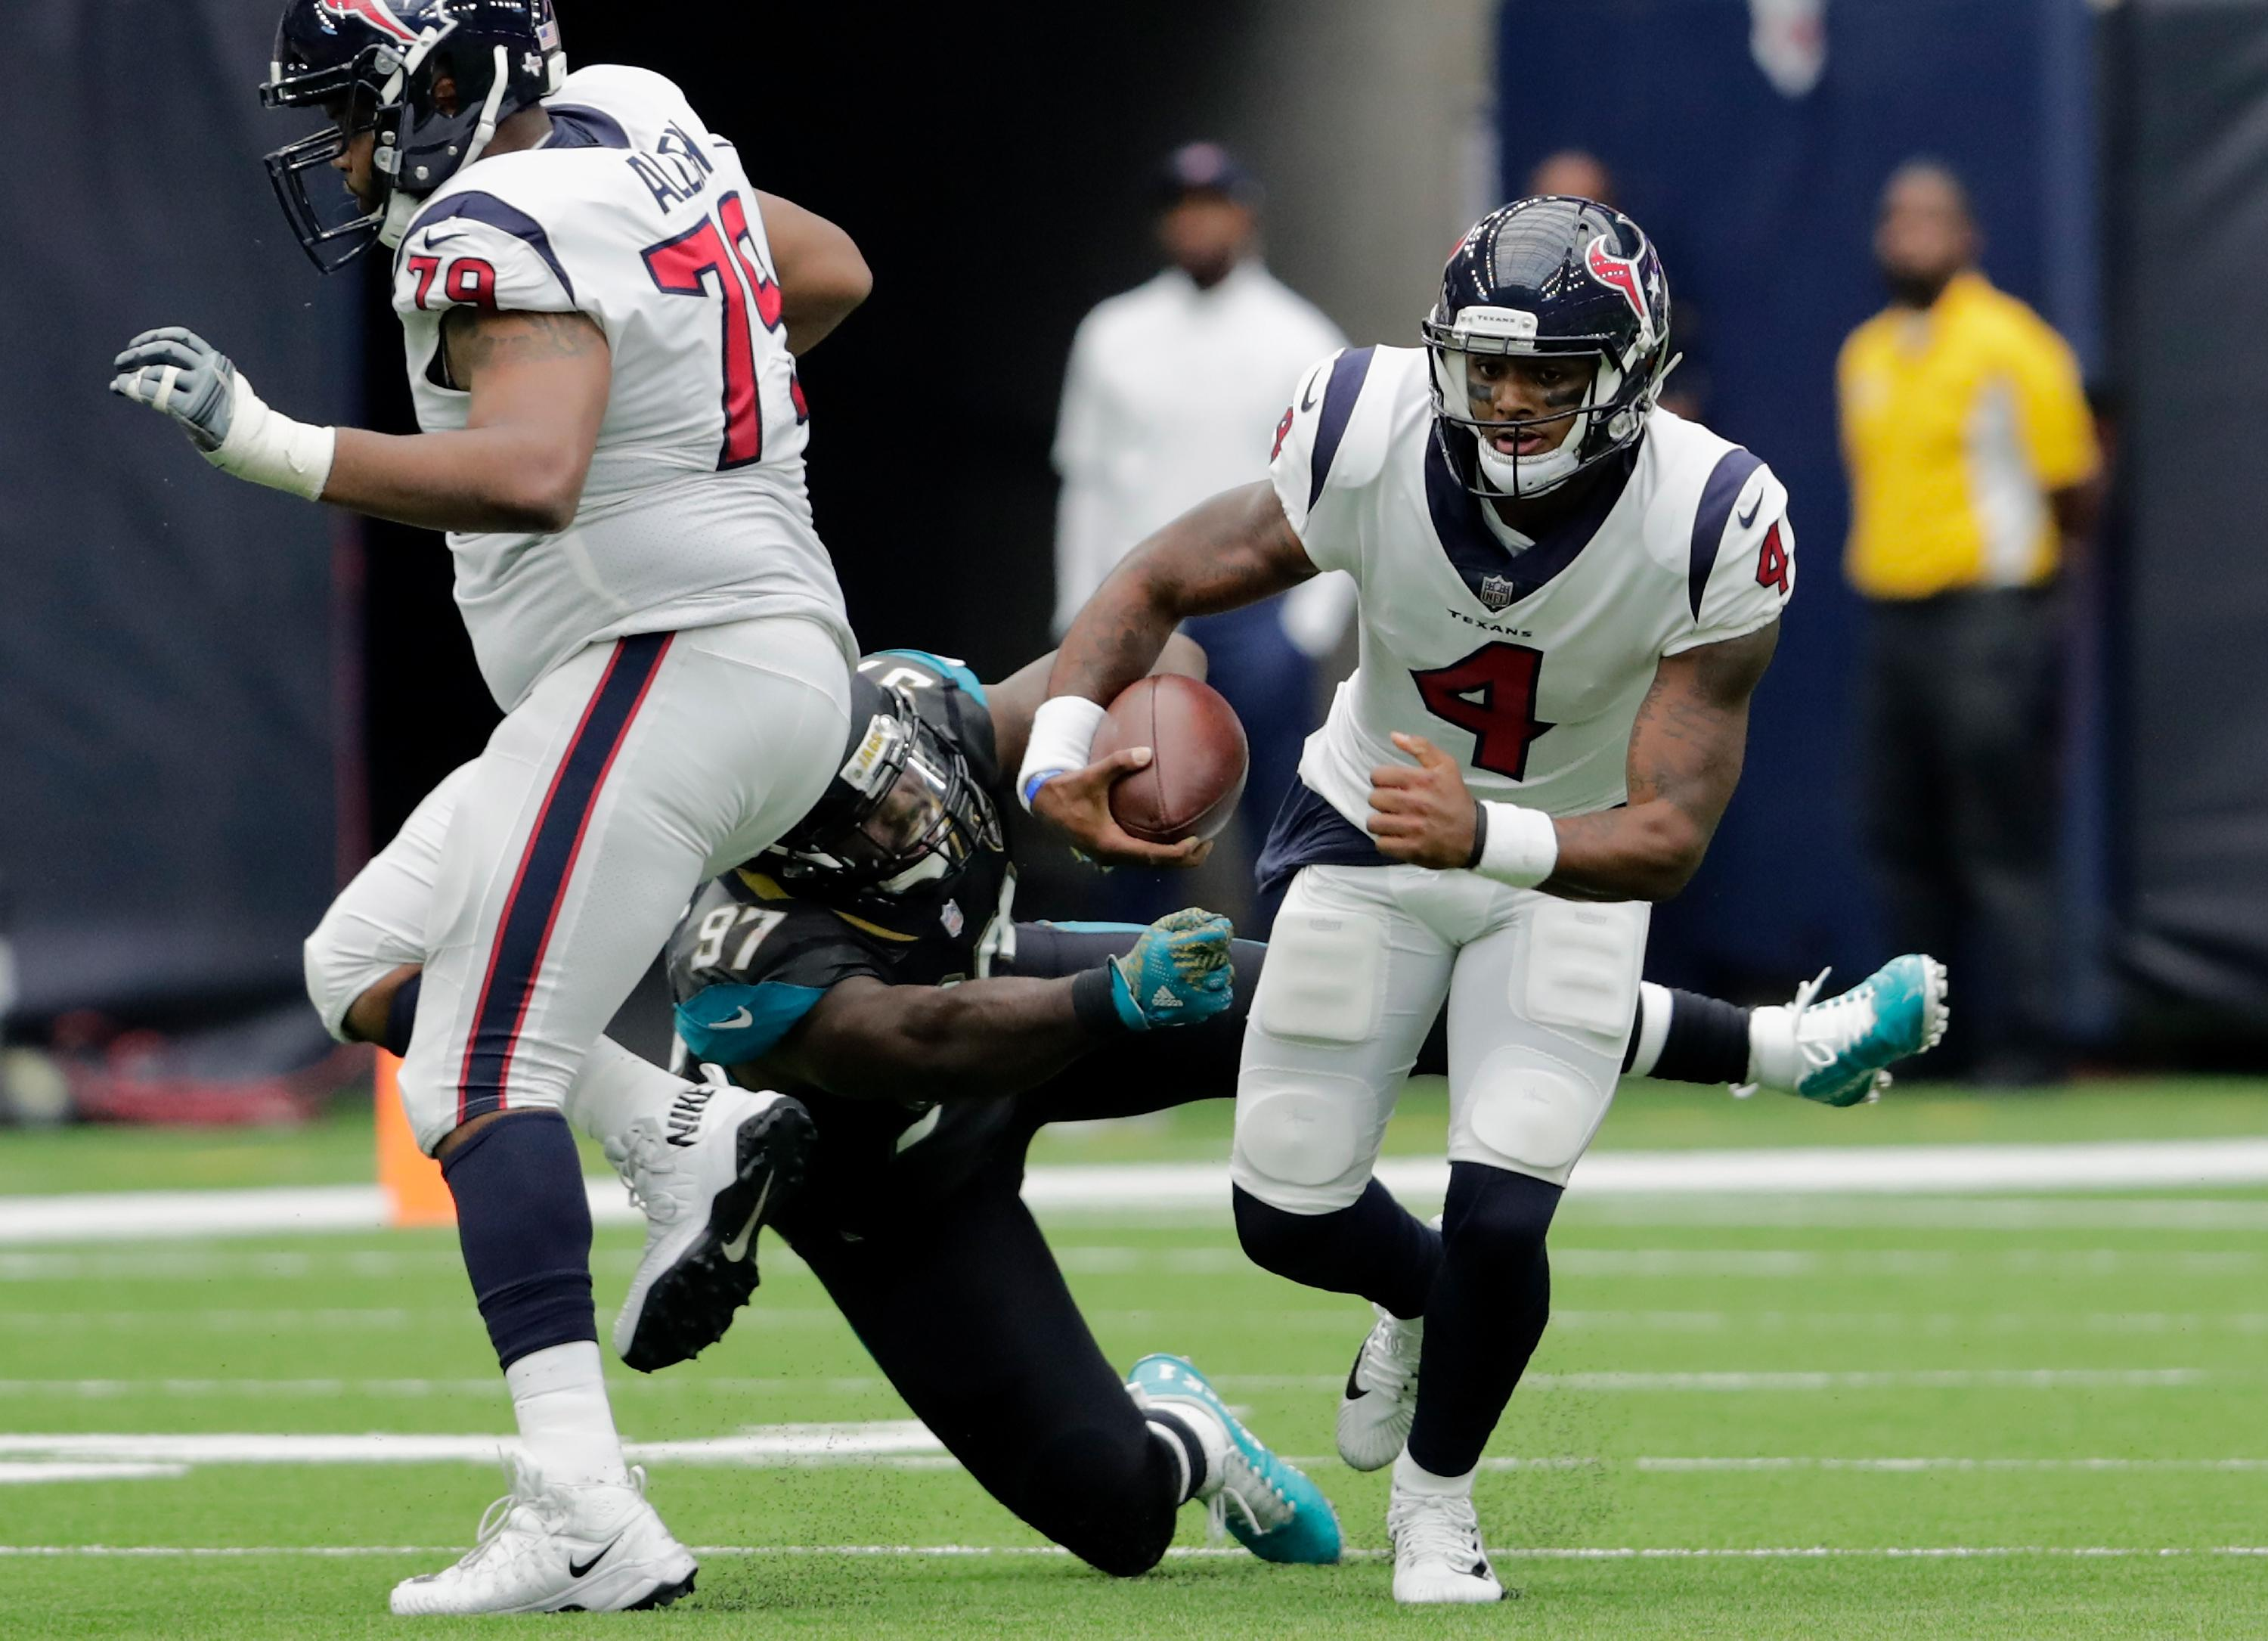 Cincinnati Bengals: Offense flounders again in Week 2 defeat to Houston Texans